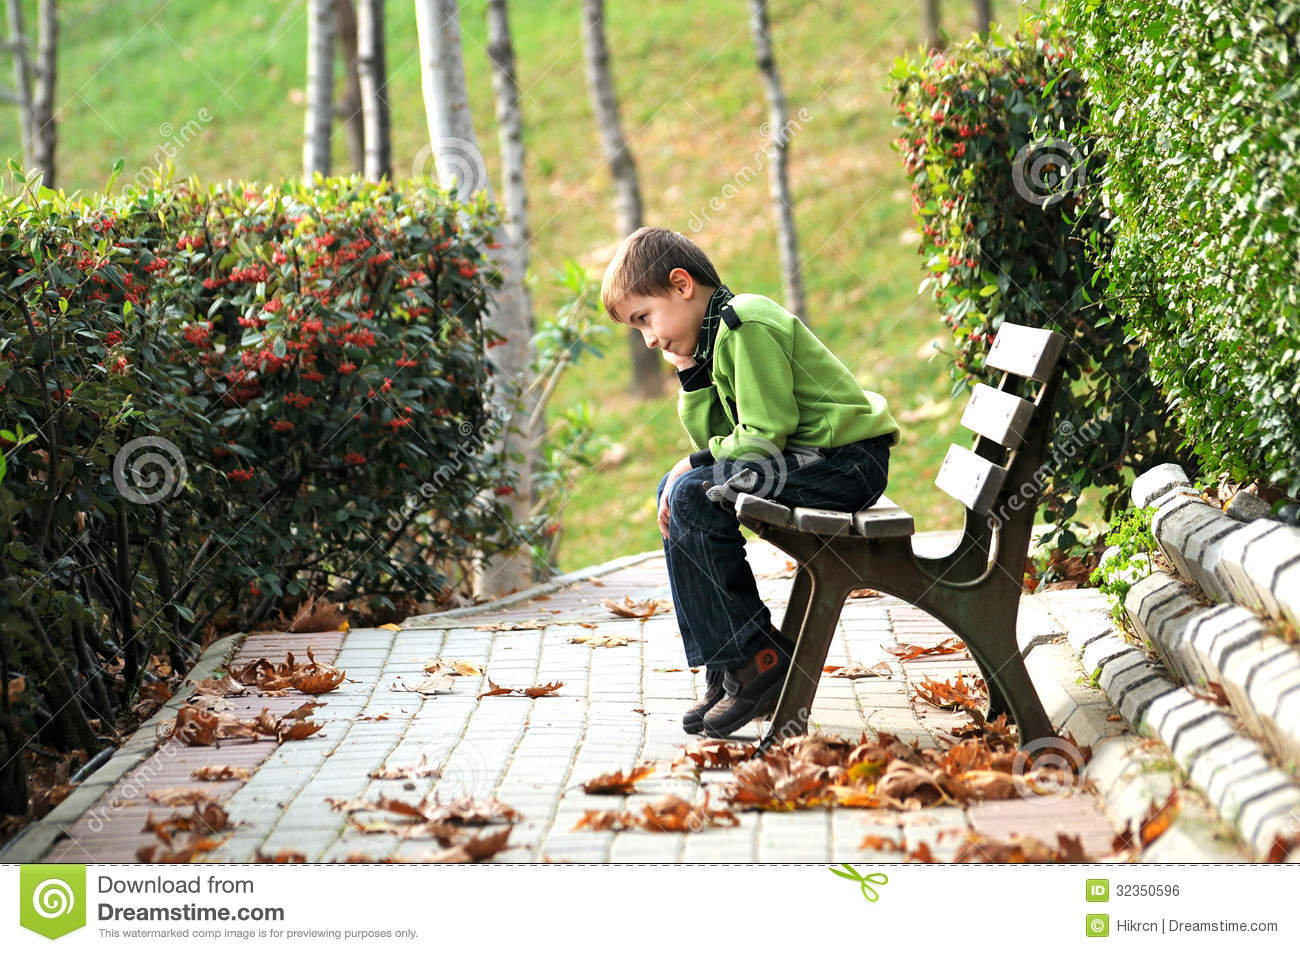 Sad Lonely Child In The Park Royalty Free Stock Image - Image ...